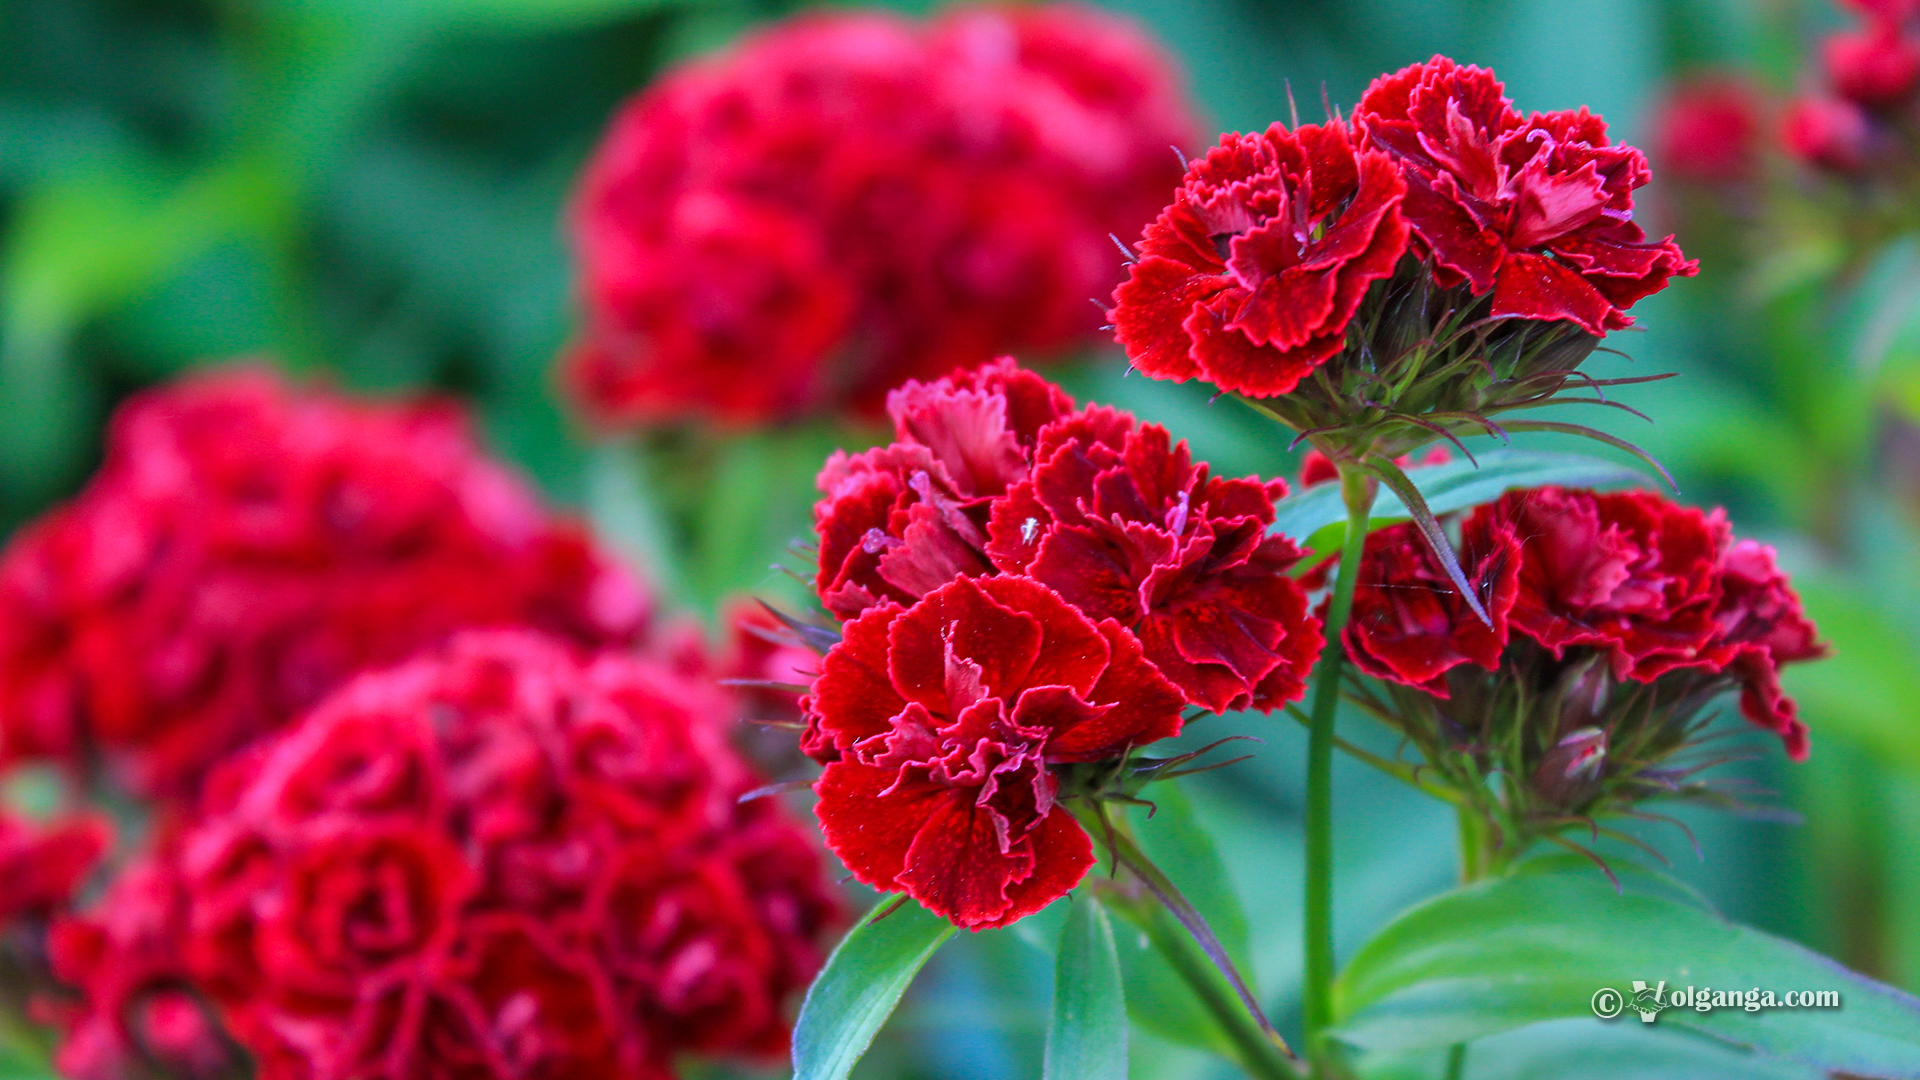 Awesome Garden Flowers Exclusive Hd Wallpapers Volganga